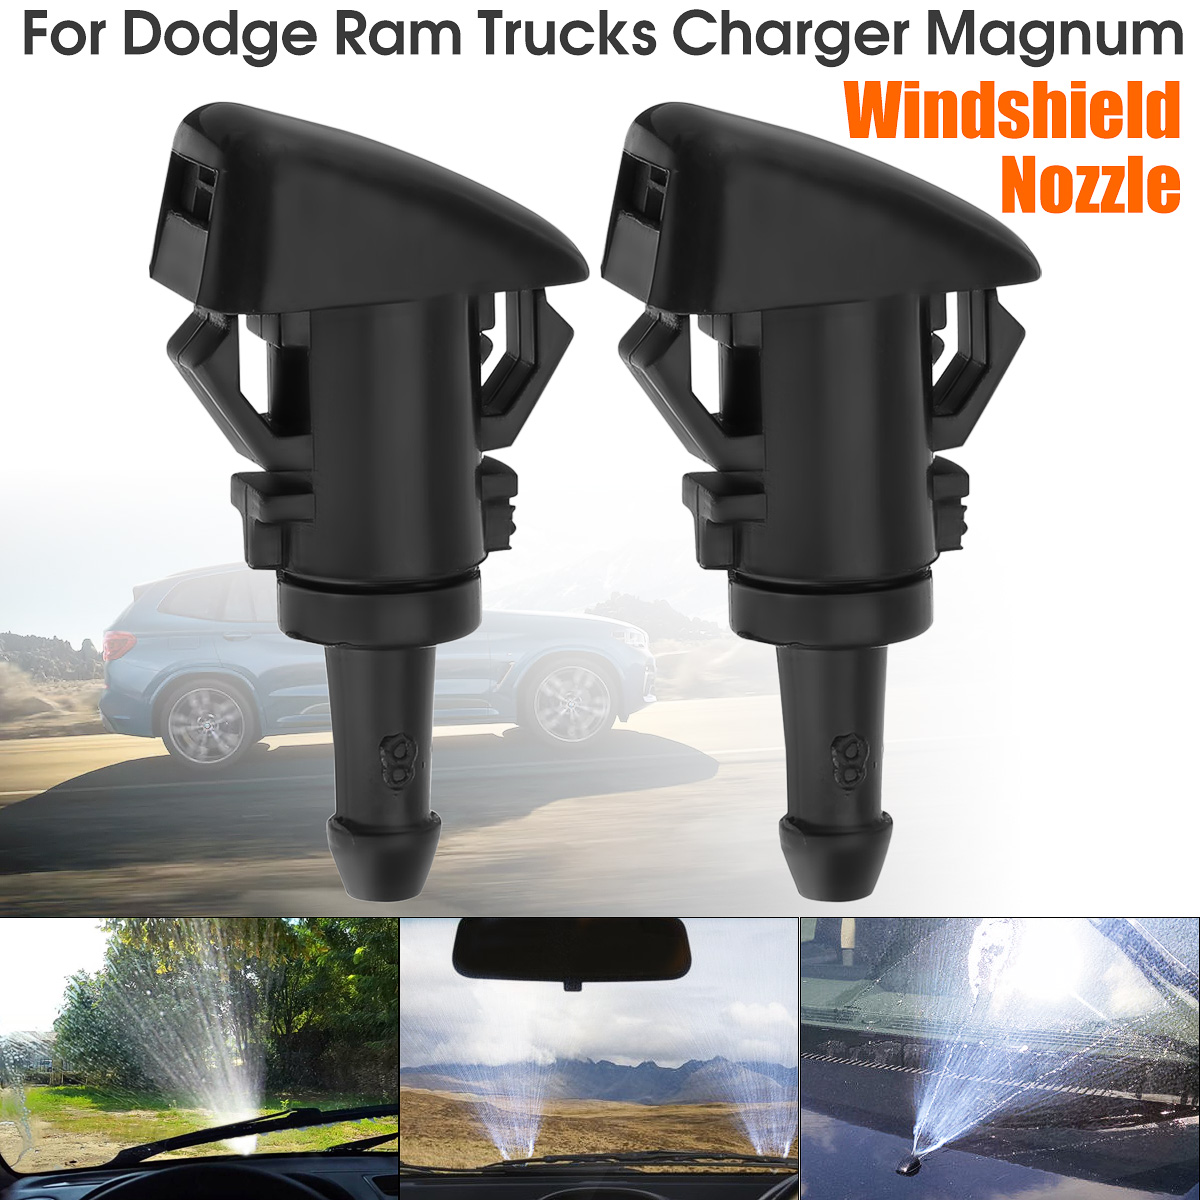 2Pcs Car Windshield Washer Wiper Water Spray Nozzle 47186 For Chrysler 300 For Dodge Avenger For Jeep For Compass Charger